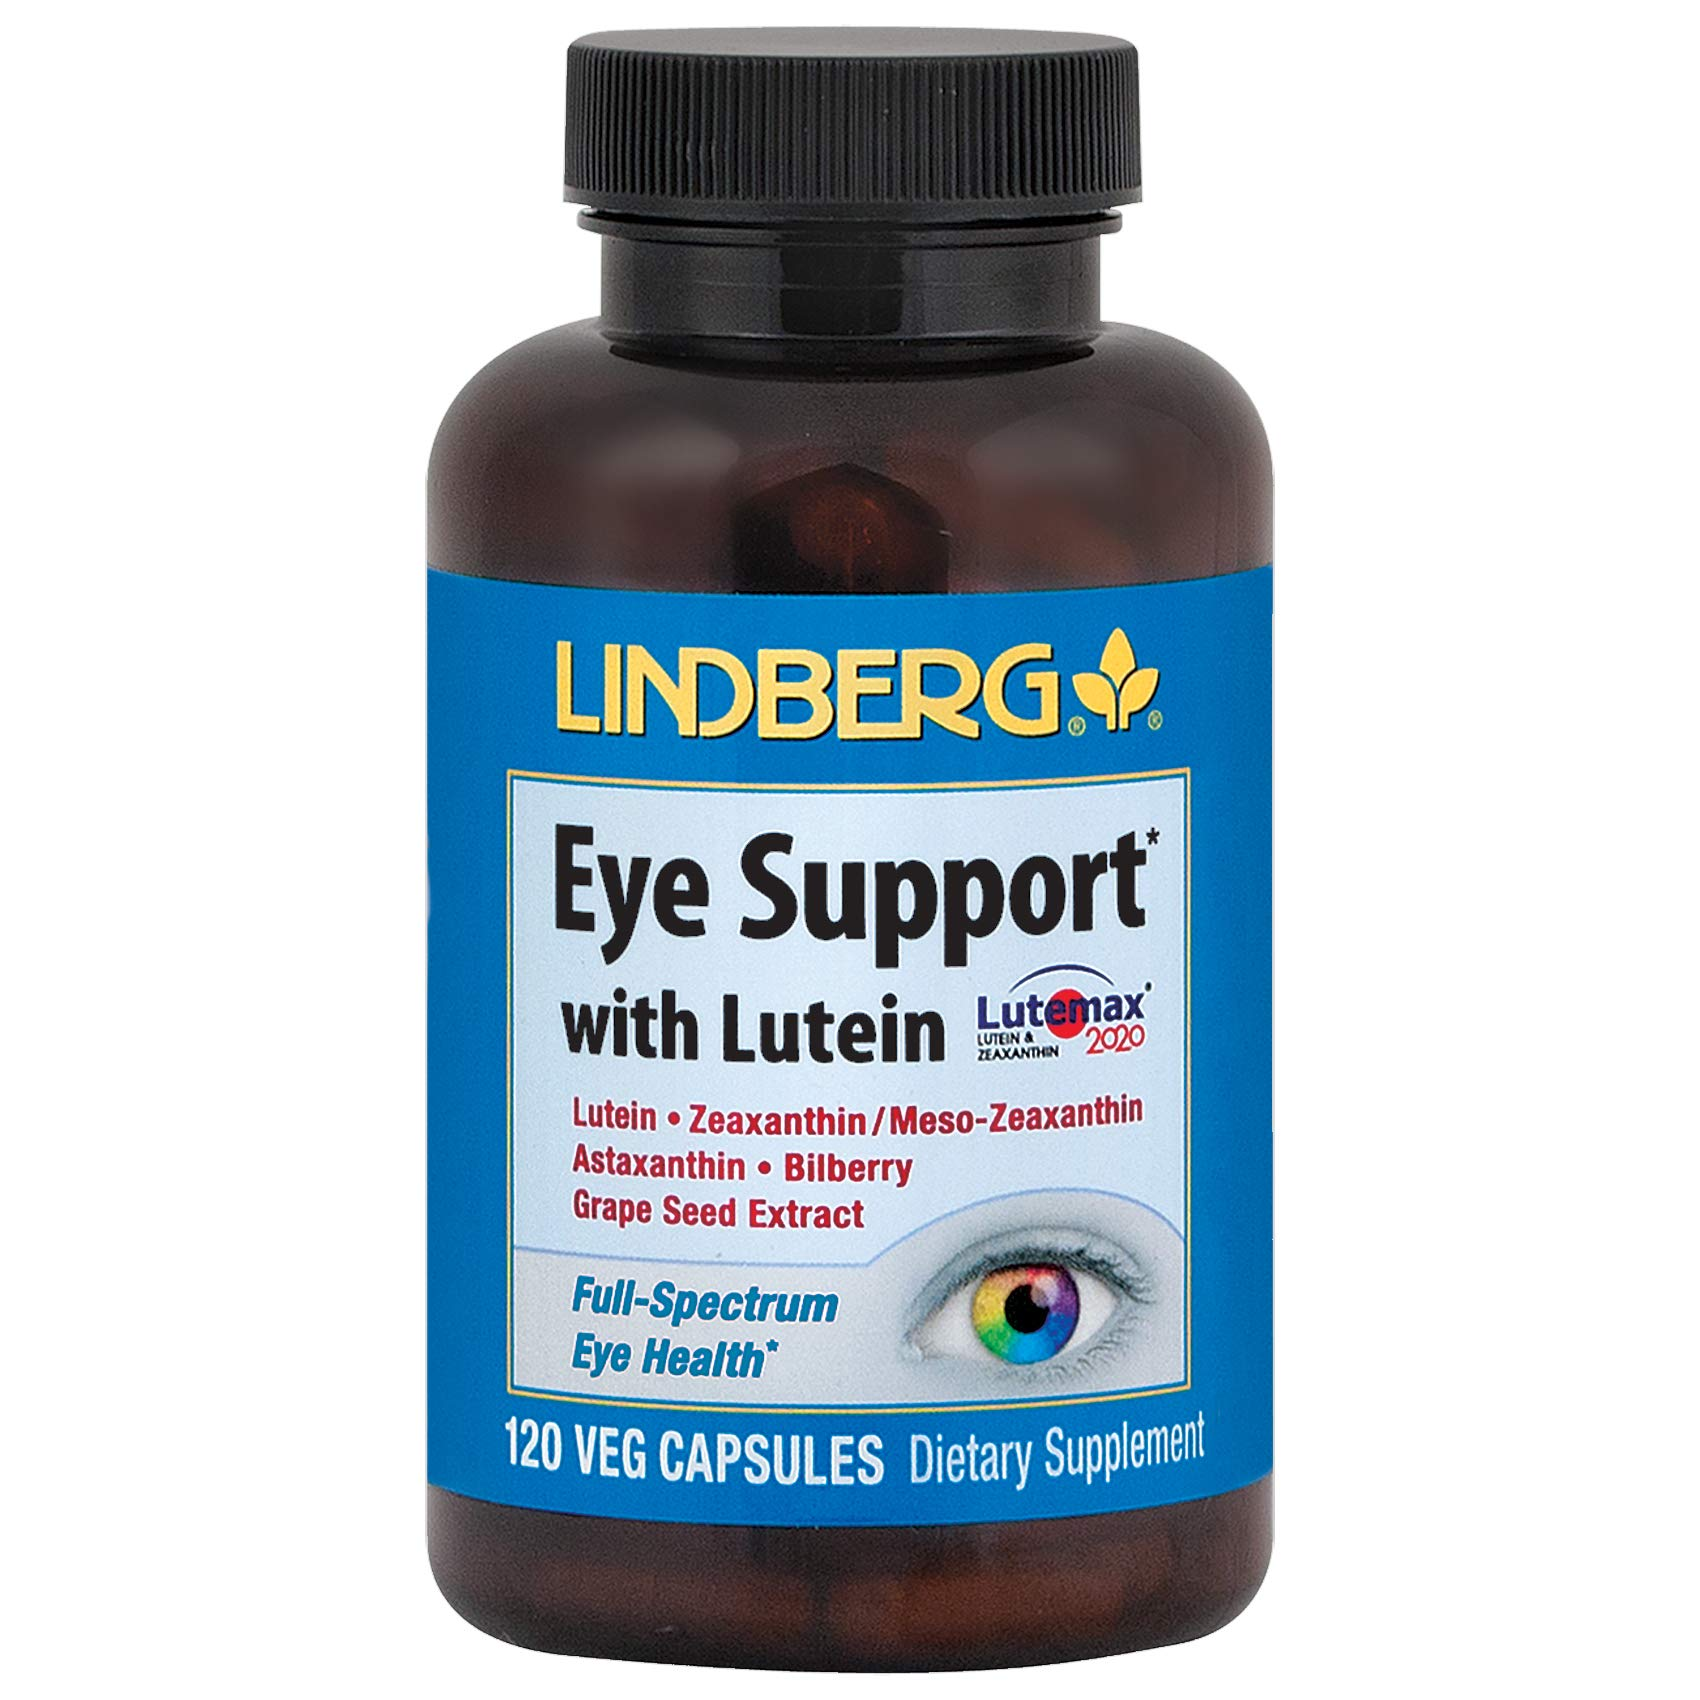 Lindberg Eye Support* with Lutein (120 Capsules)